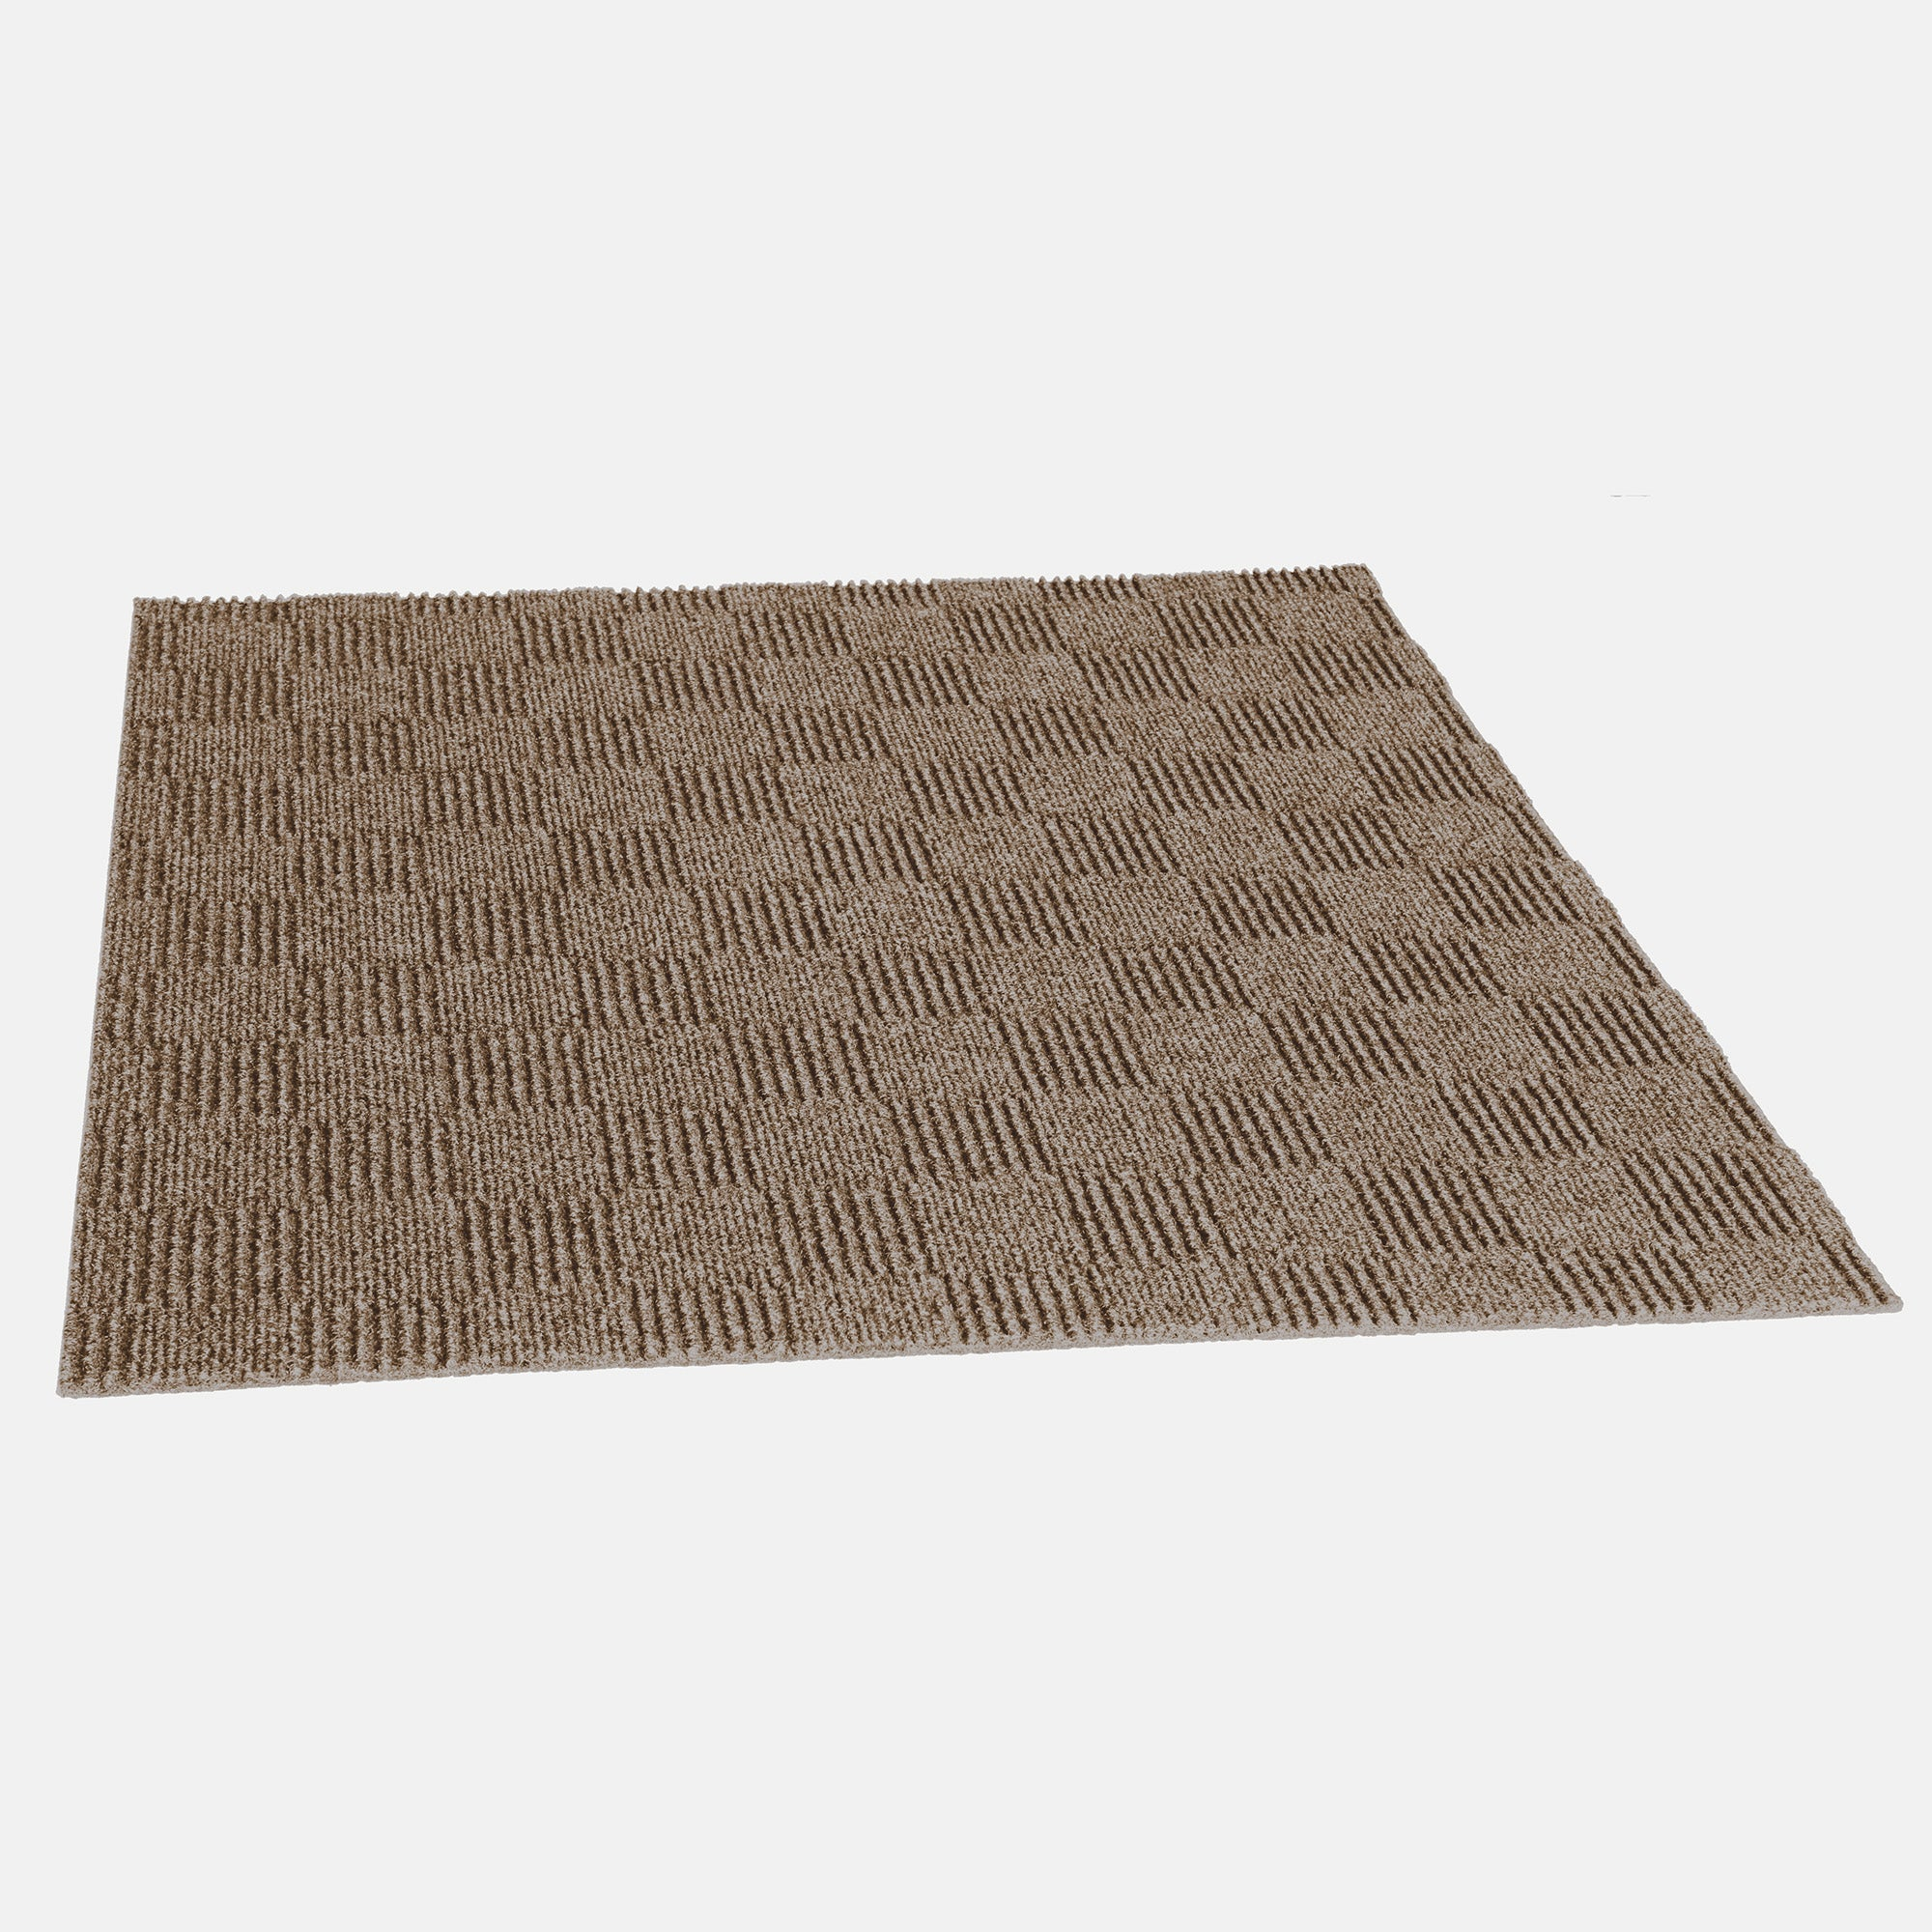 Prism 24'' X 24'' Premium Peel And Stick Carpet Tiles (Taupe)